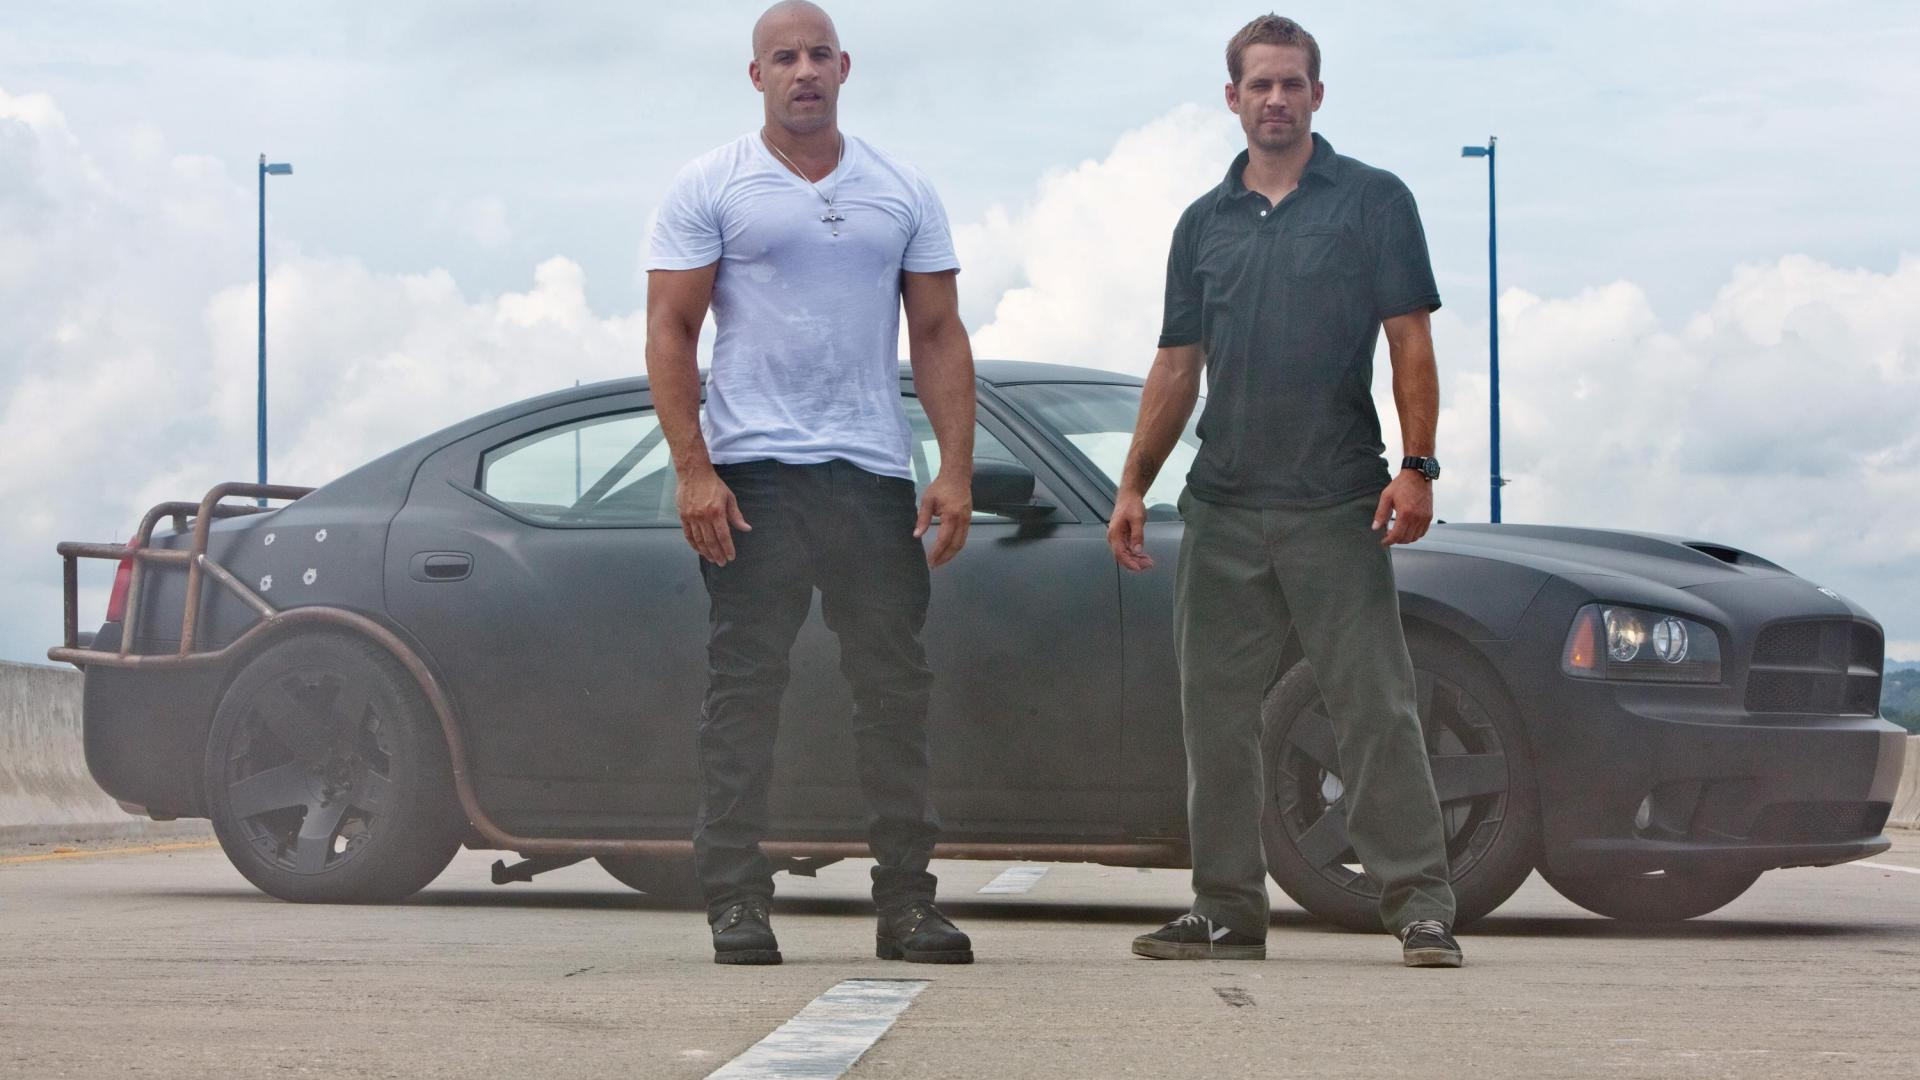 fast-and-furious-7-full-movie-gallery-4